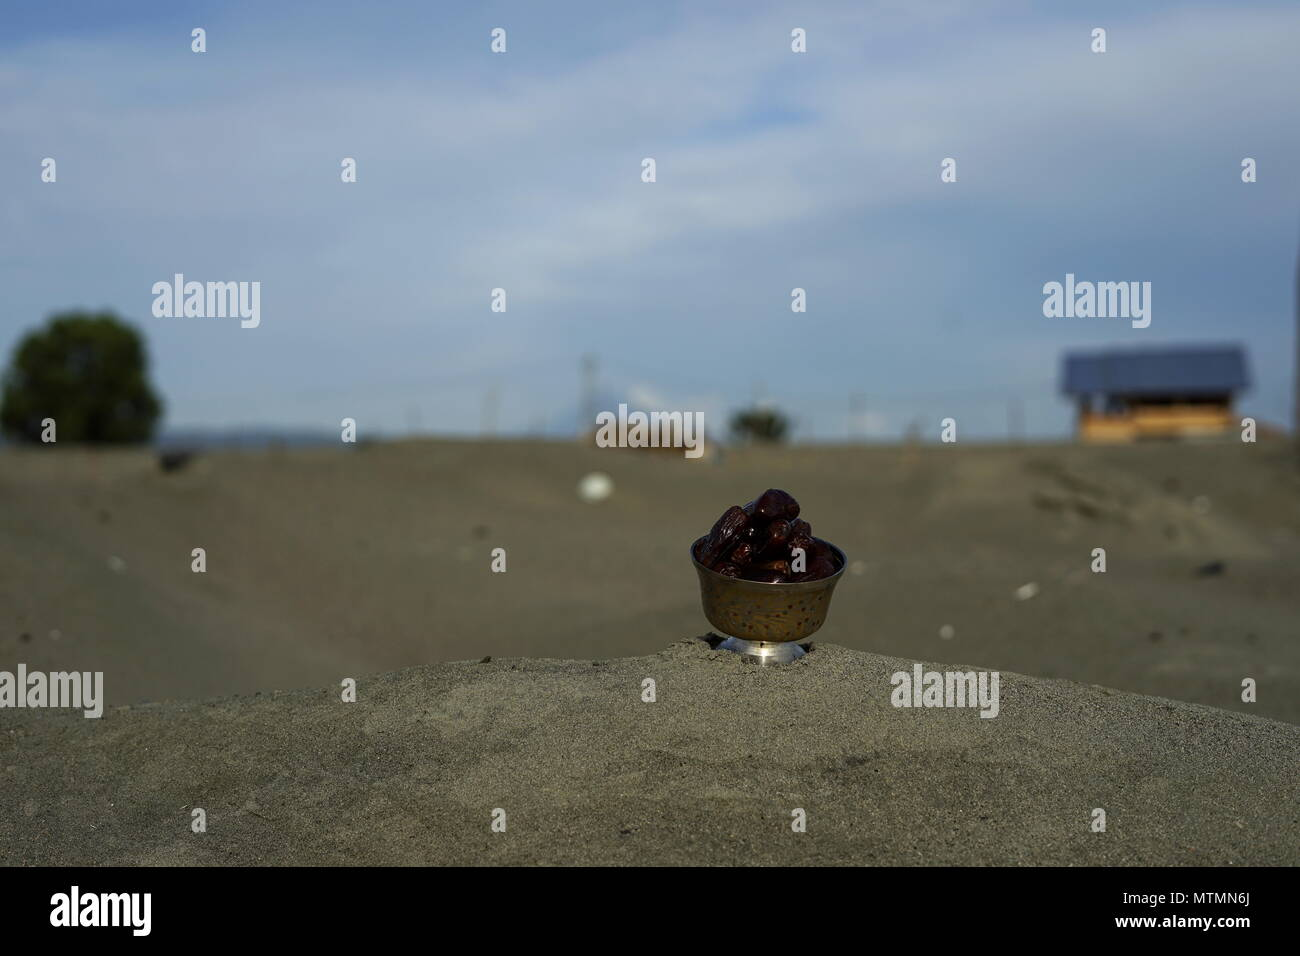 Date Fruit in Vintage Silver Plate - Stock Image